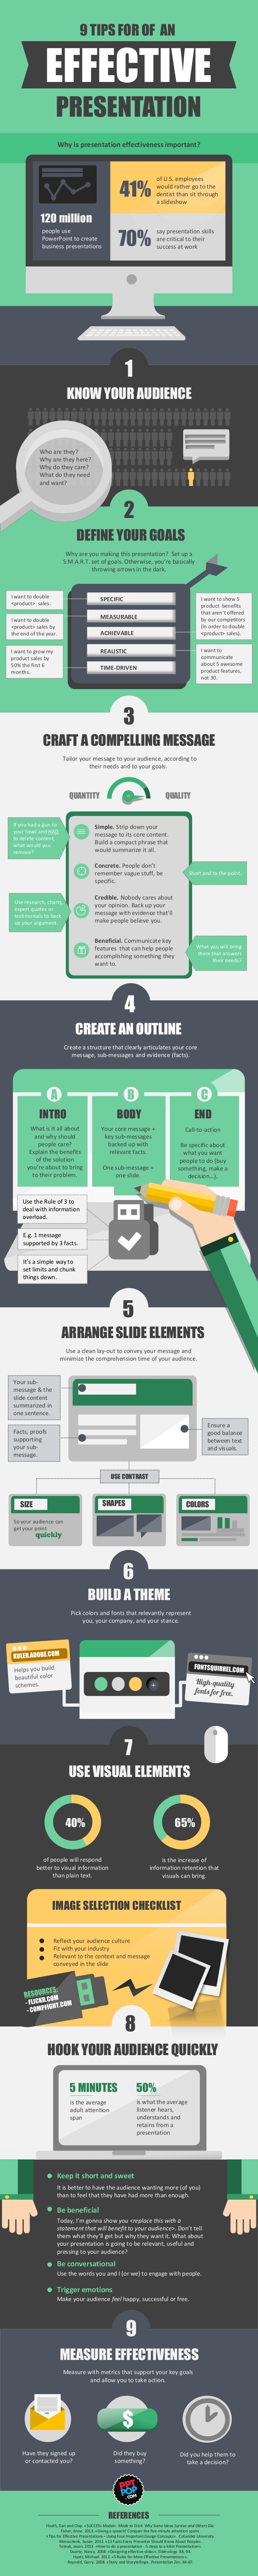 9 actionable presentation tips that ll make you stand out cool